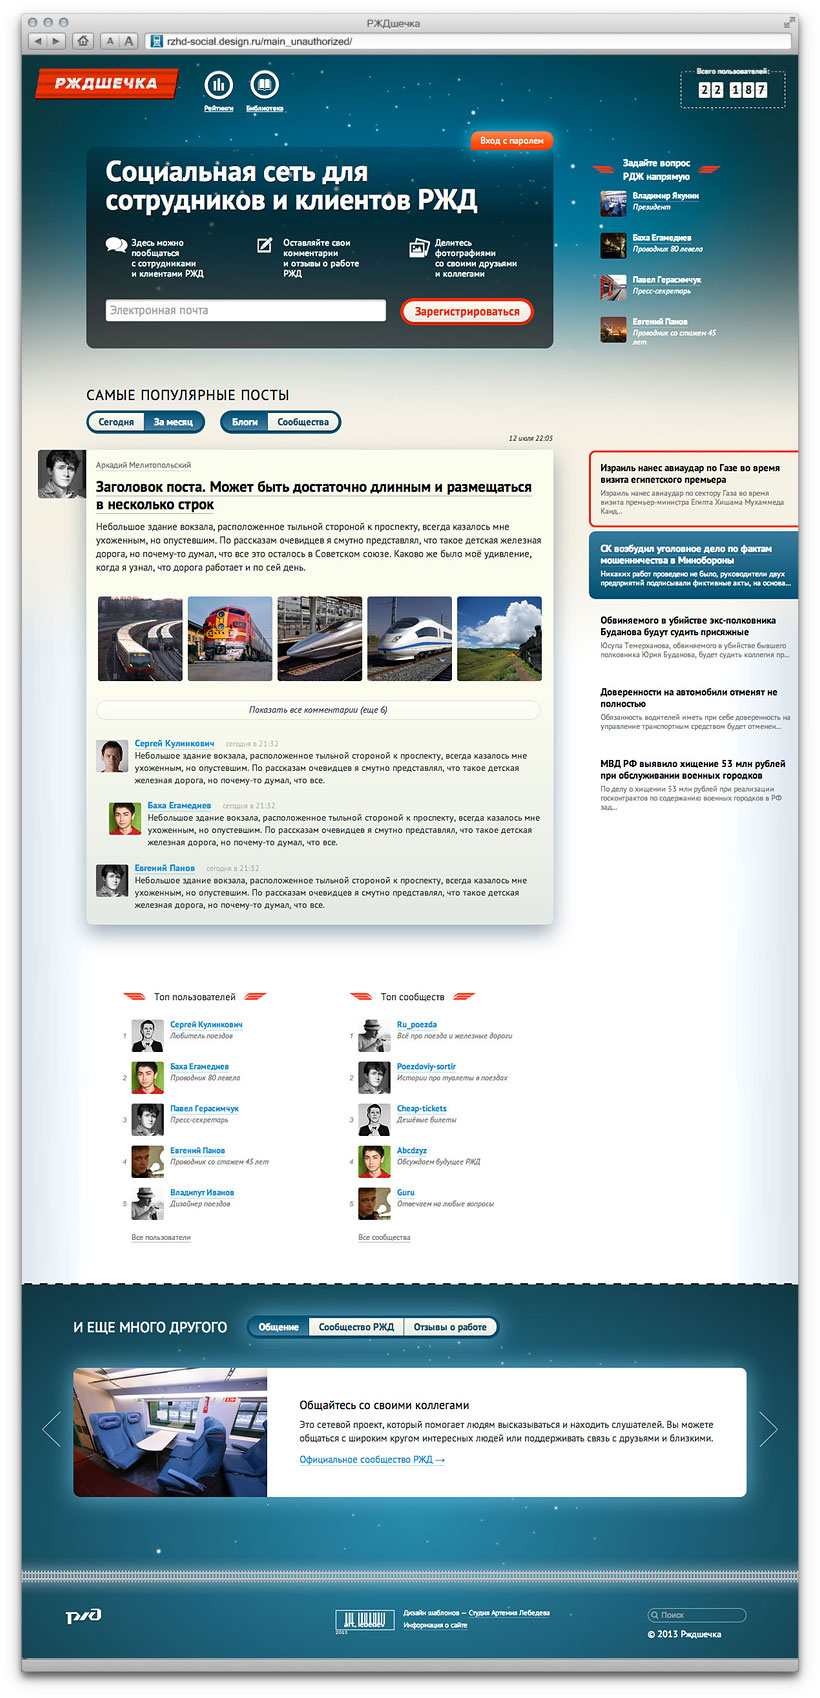 rzd social networking website